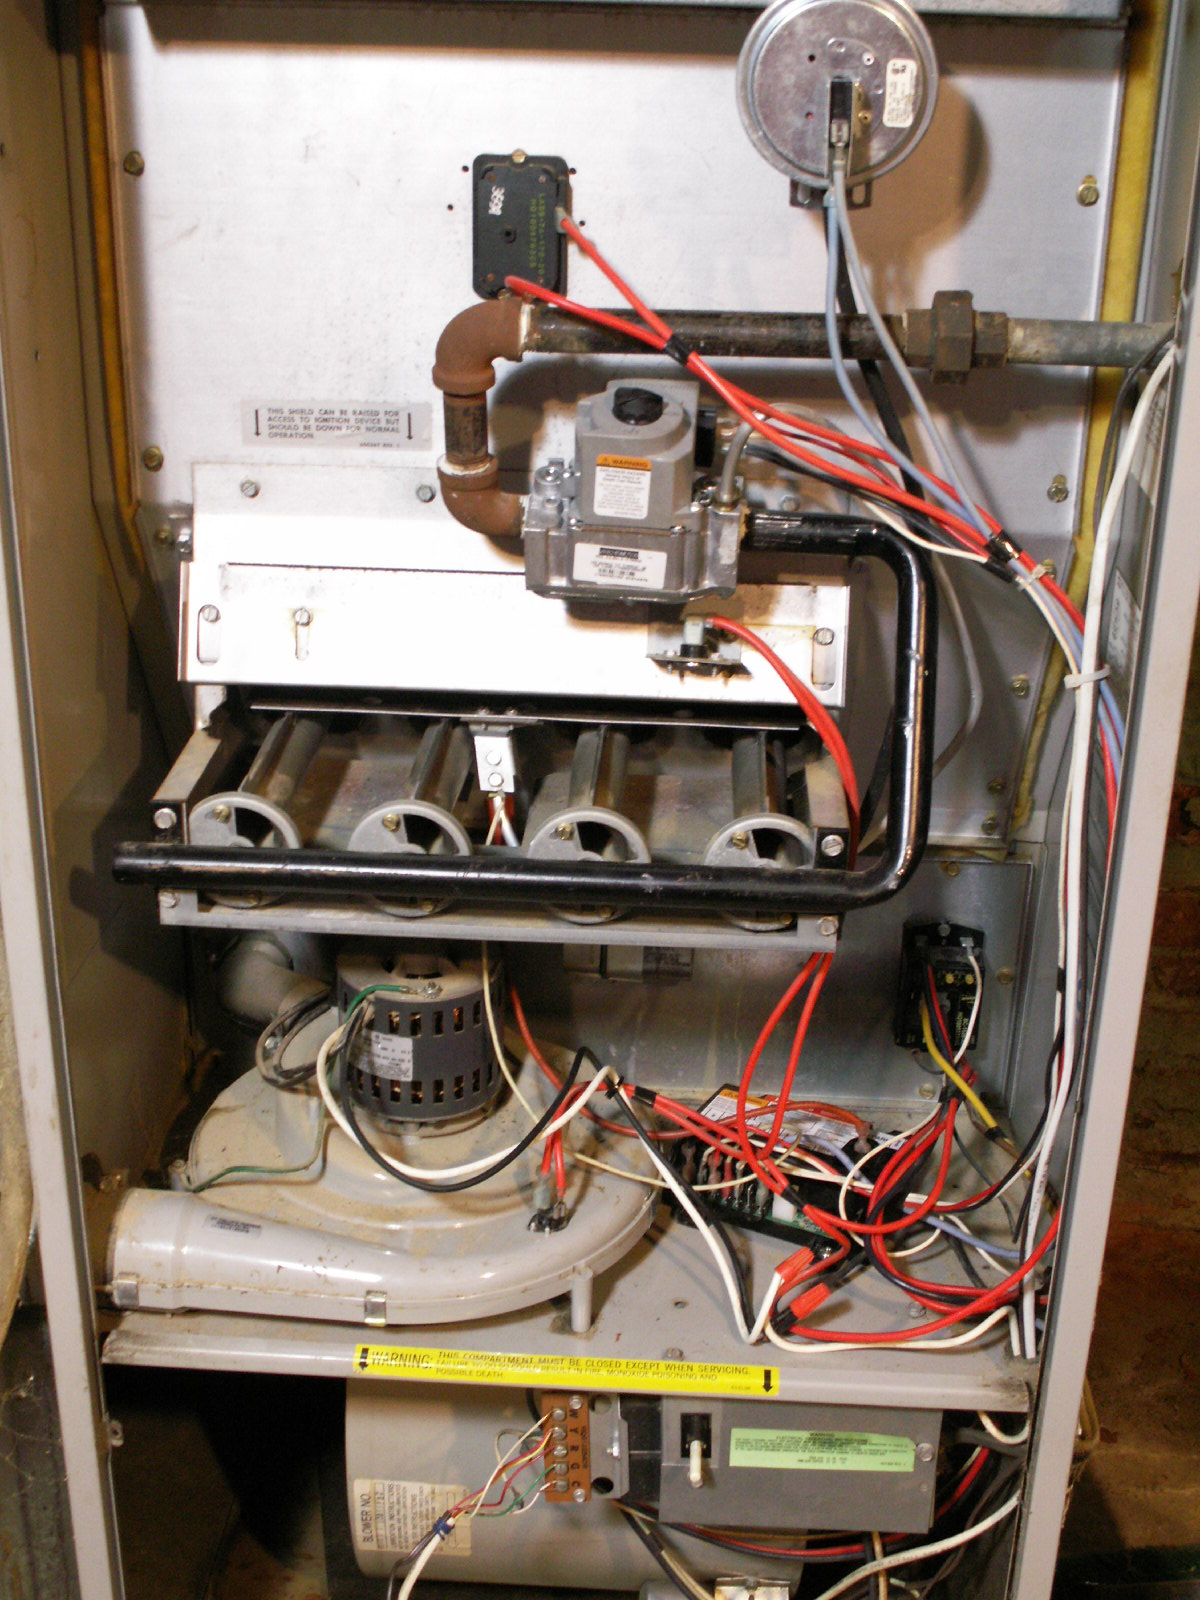 hight resolution of heil gas furnace wiring diagram heil image wiring heil furnace wiring diagram heil auto wiring diagram